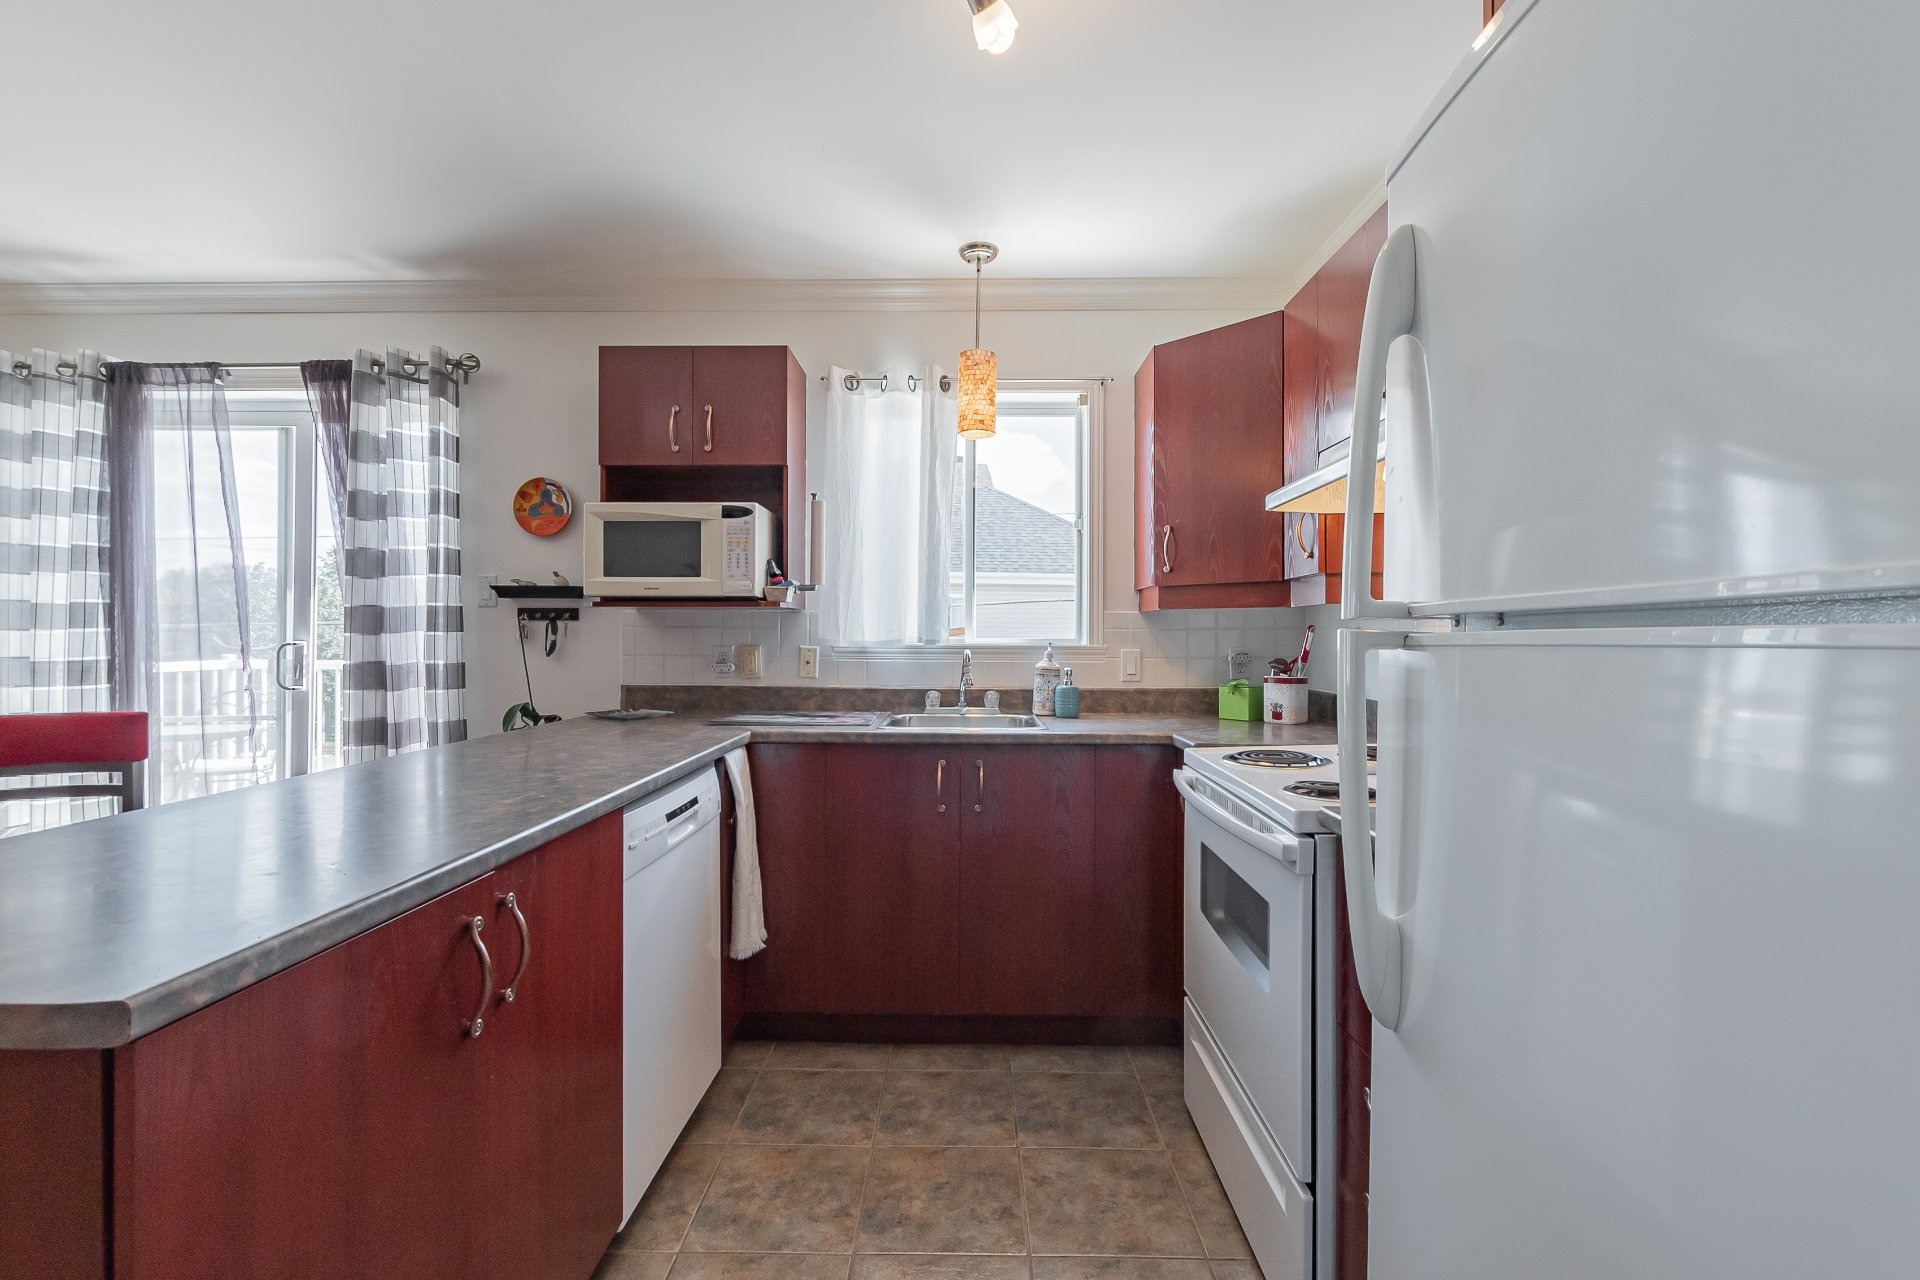 image 10 - Apartment For sale Sainte-Catherine - 5 rooms